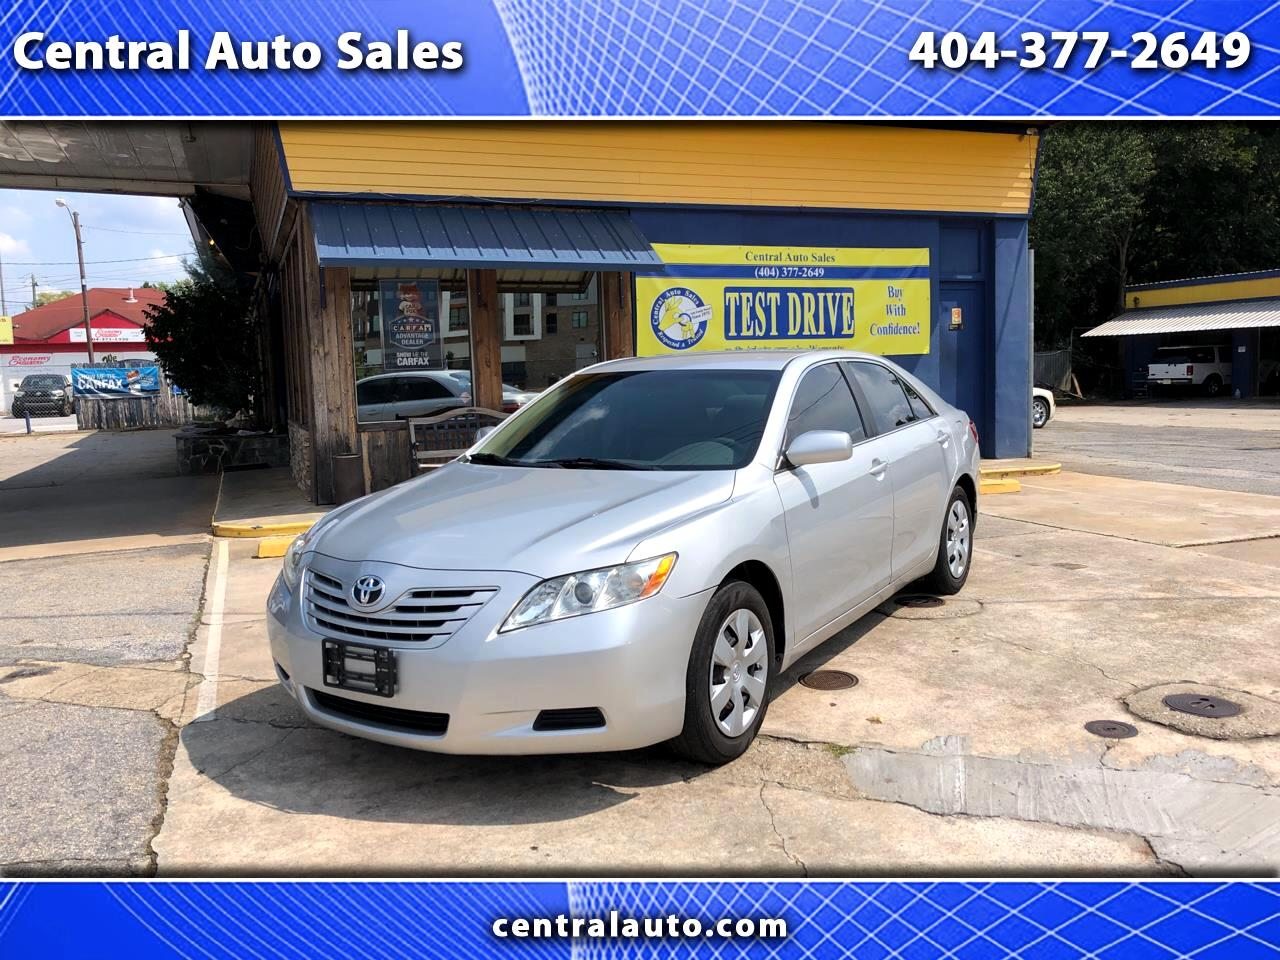 Toyota Camry 4dr Sdn CE Auto 2007